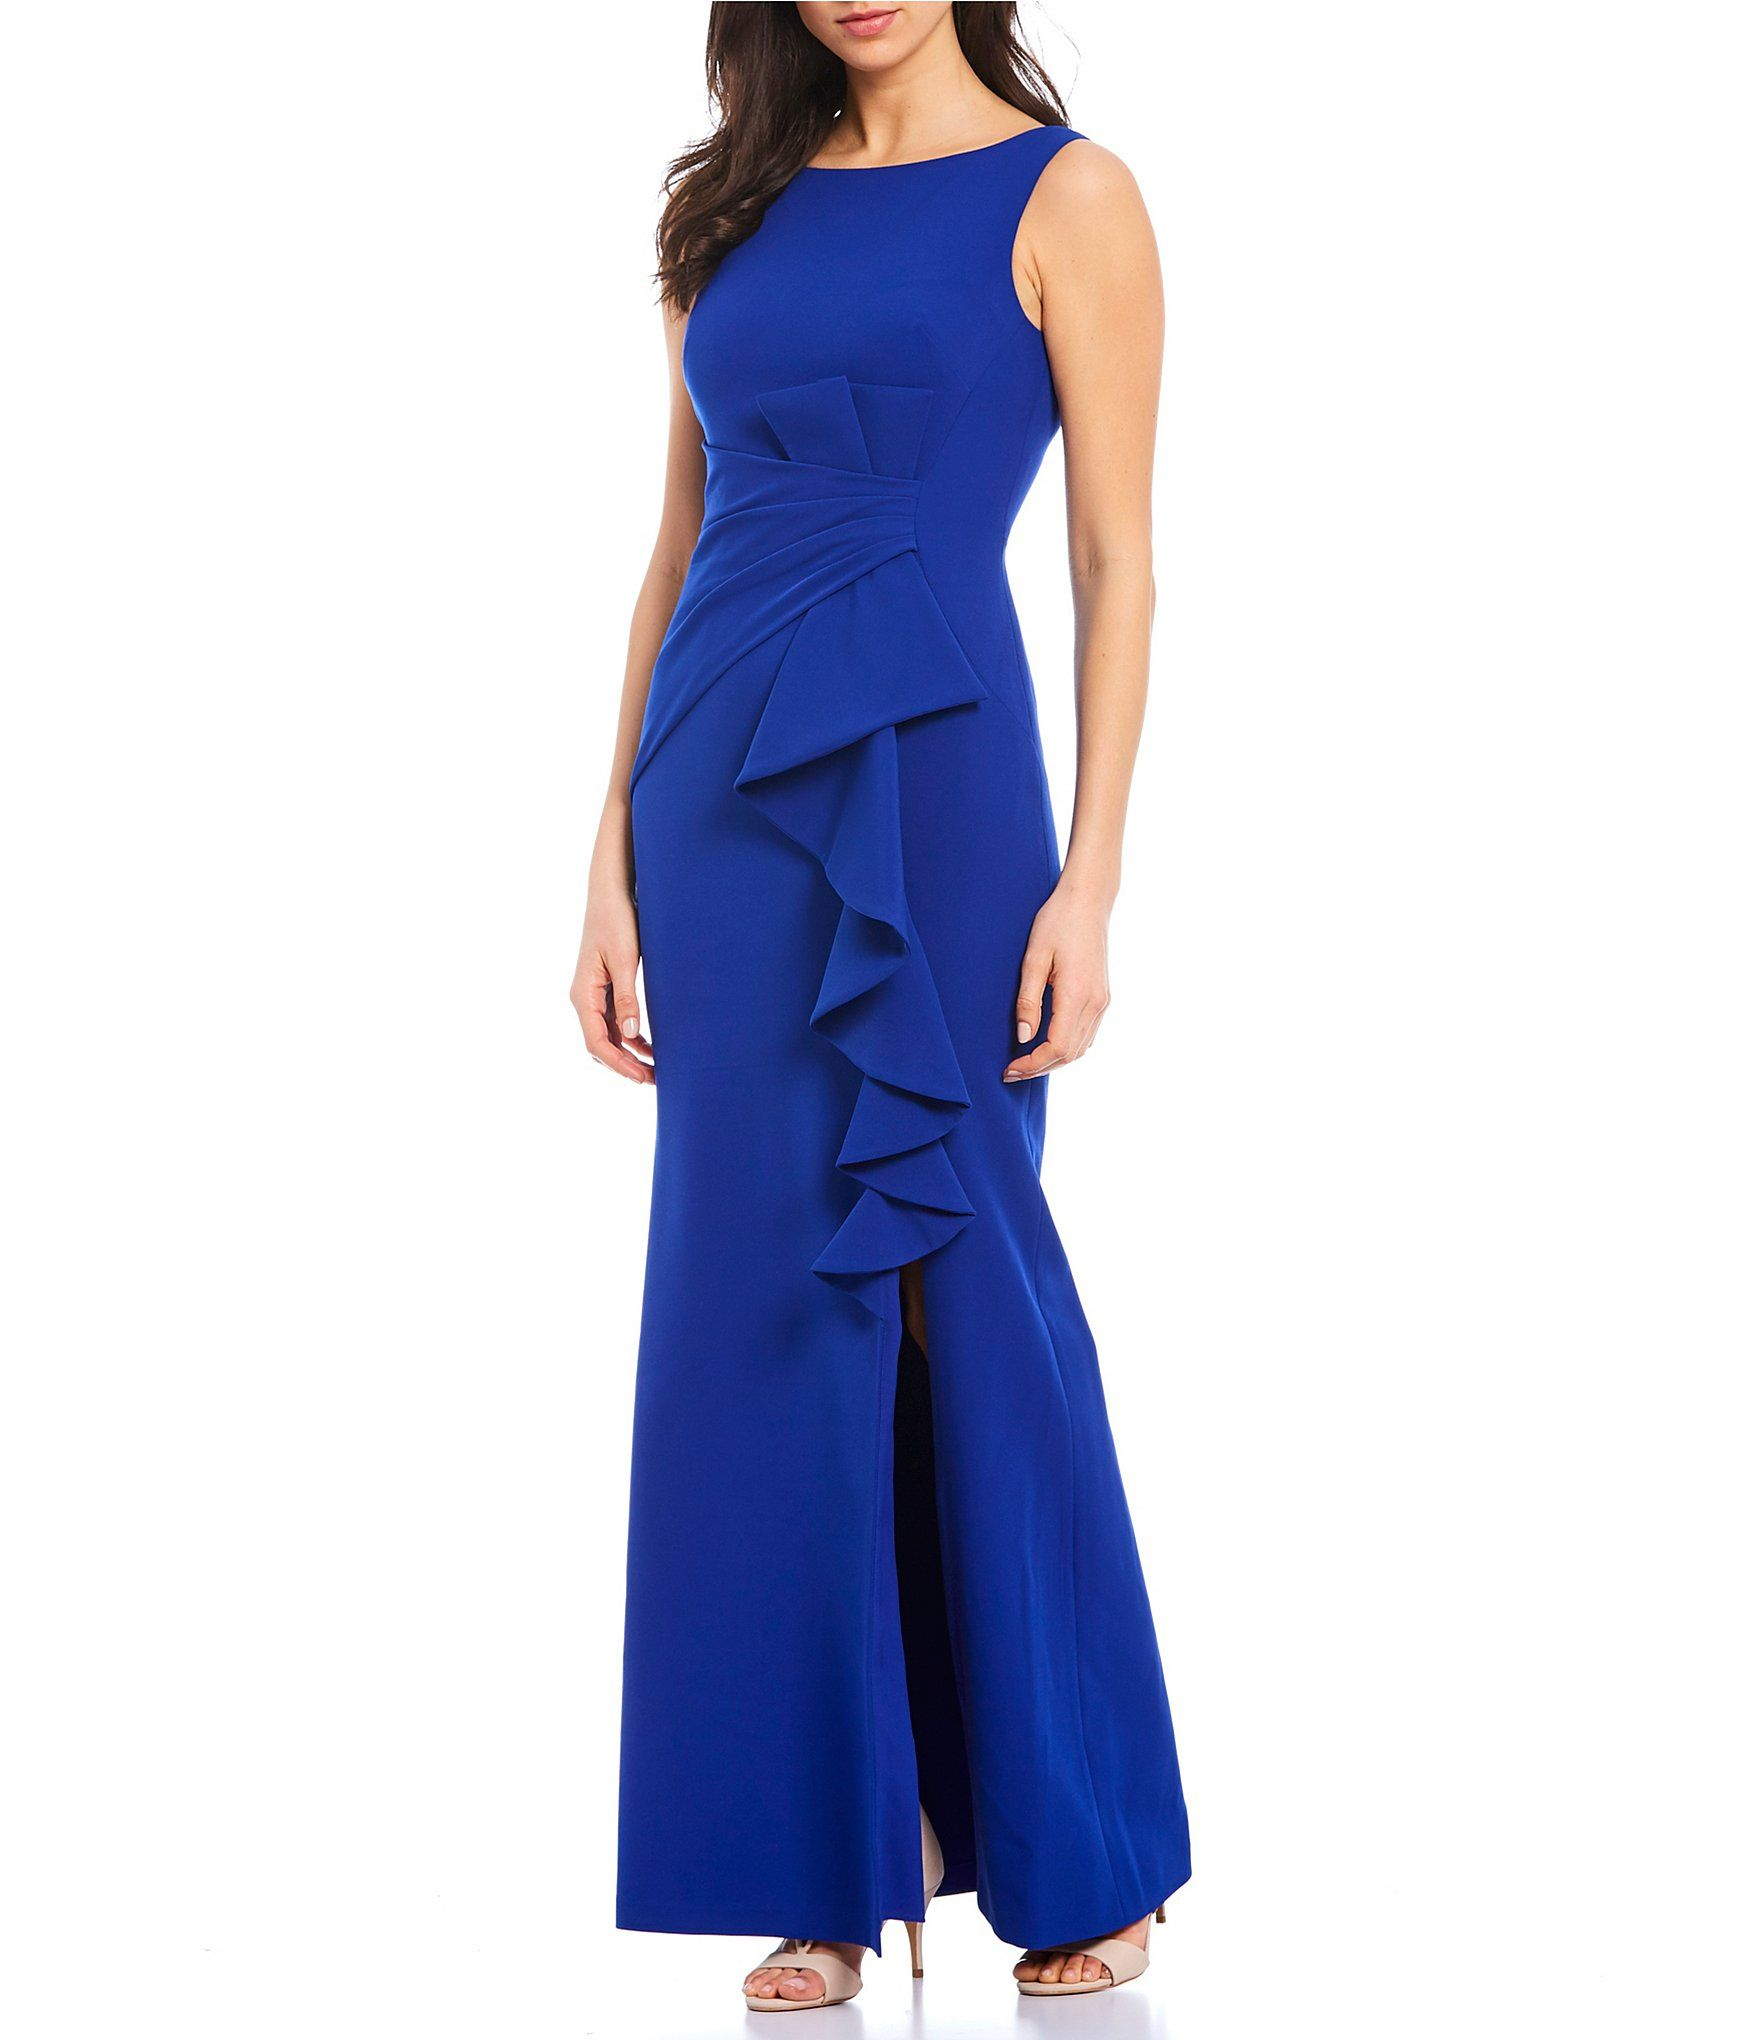 From Eliza J, this gown features:Boat necklineSleevelessPleated gathers at waistRuffle front detailFully linedstraight hemline with front slit detail Invisible zip back closurePolyester/spandexDry clean Imported.